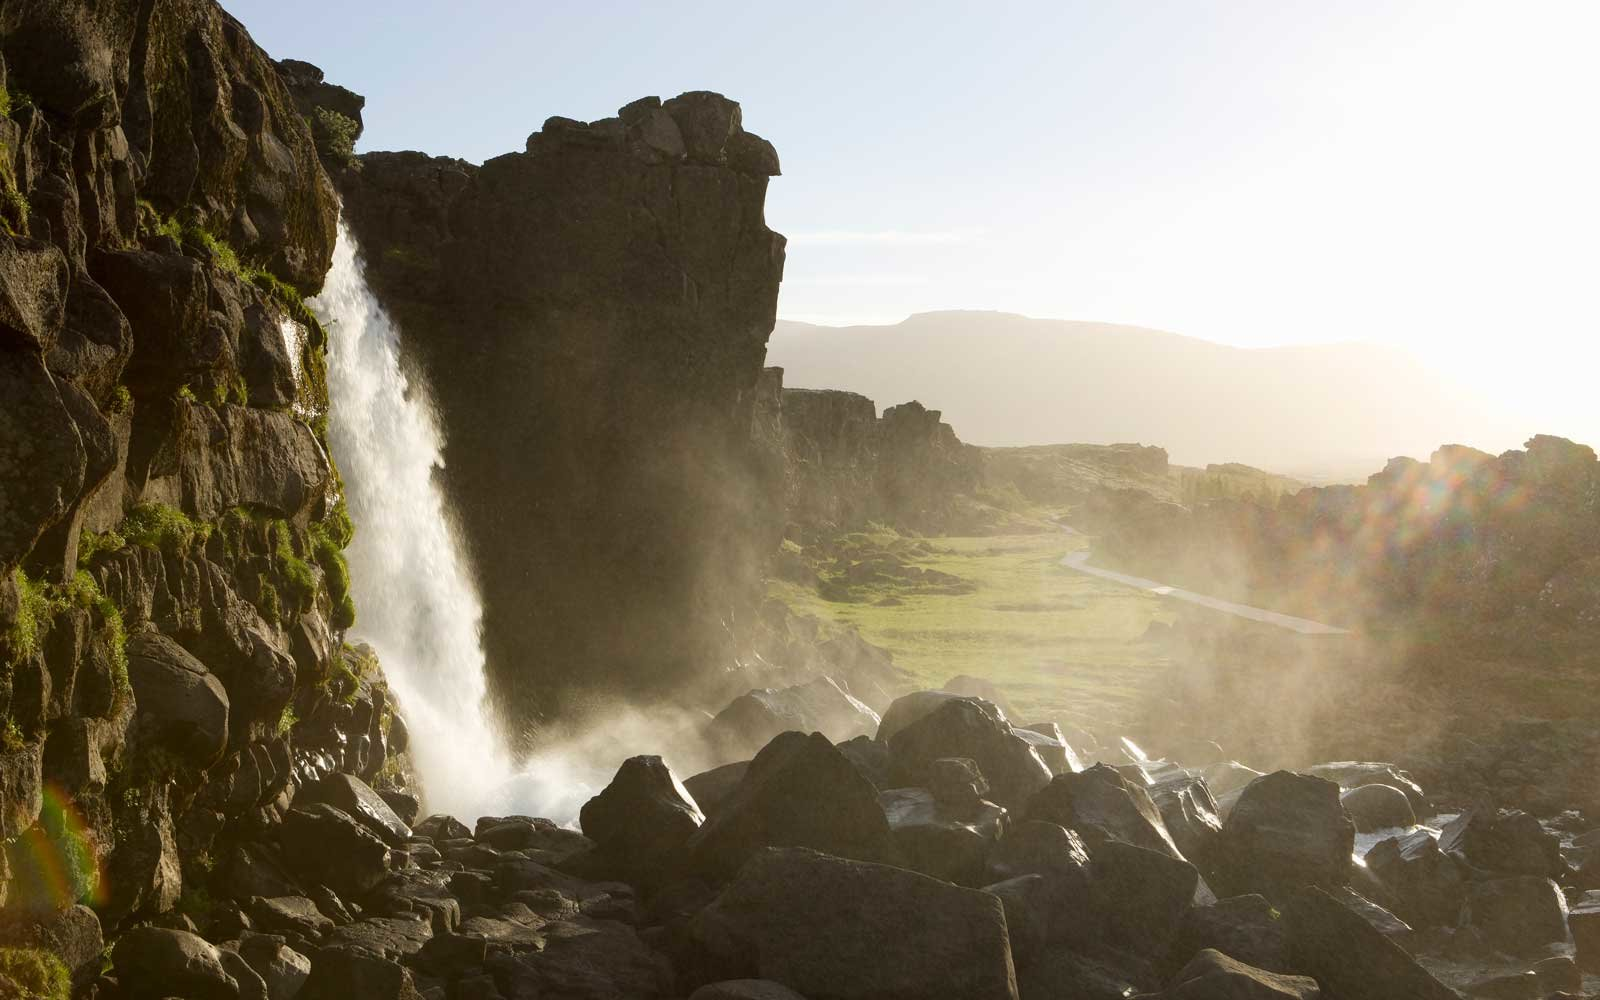 Oxararfoss waterfall, Thingvellir national park, Thingvellir, Blaskogarbyggd, Iceland